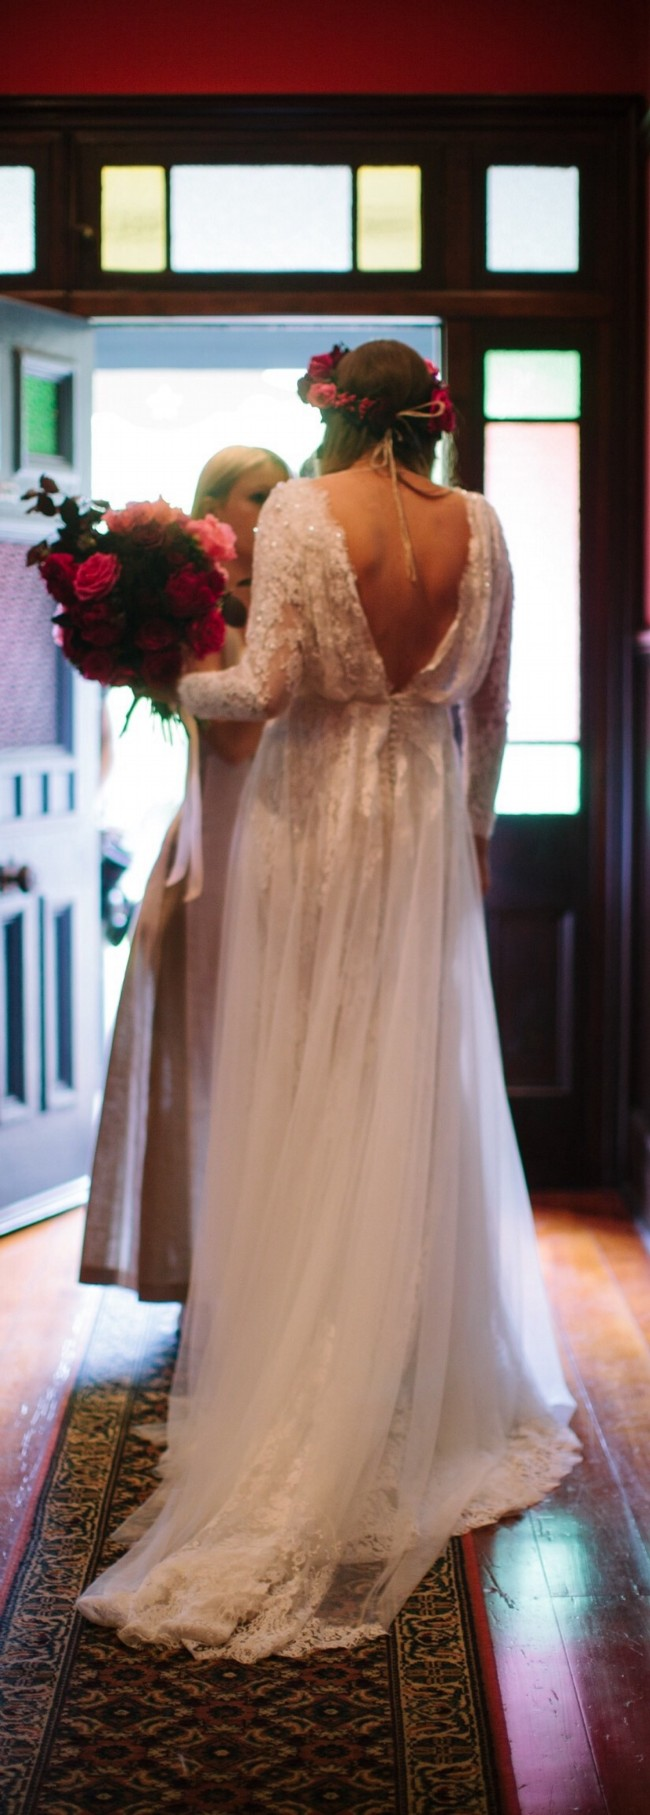 Leah da gloria pre owned wedding dress on sale 67 off for Leah da gloria wedding dress cost